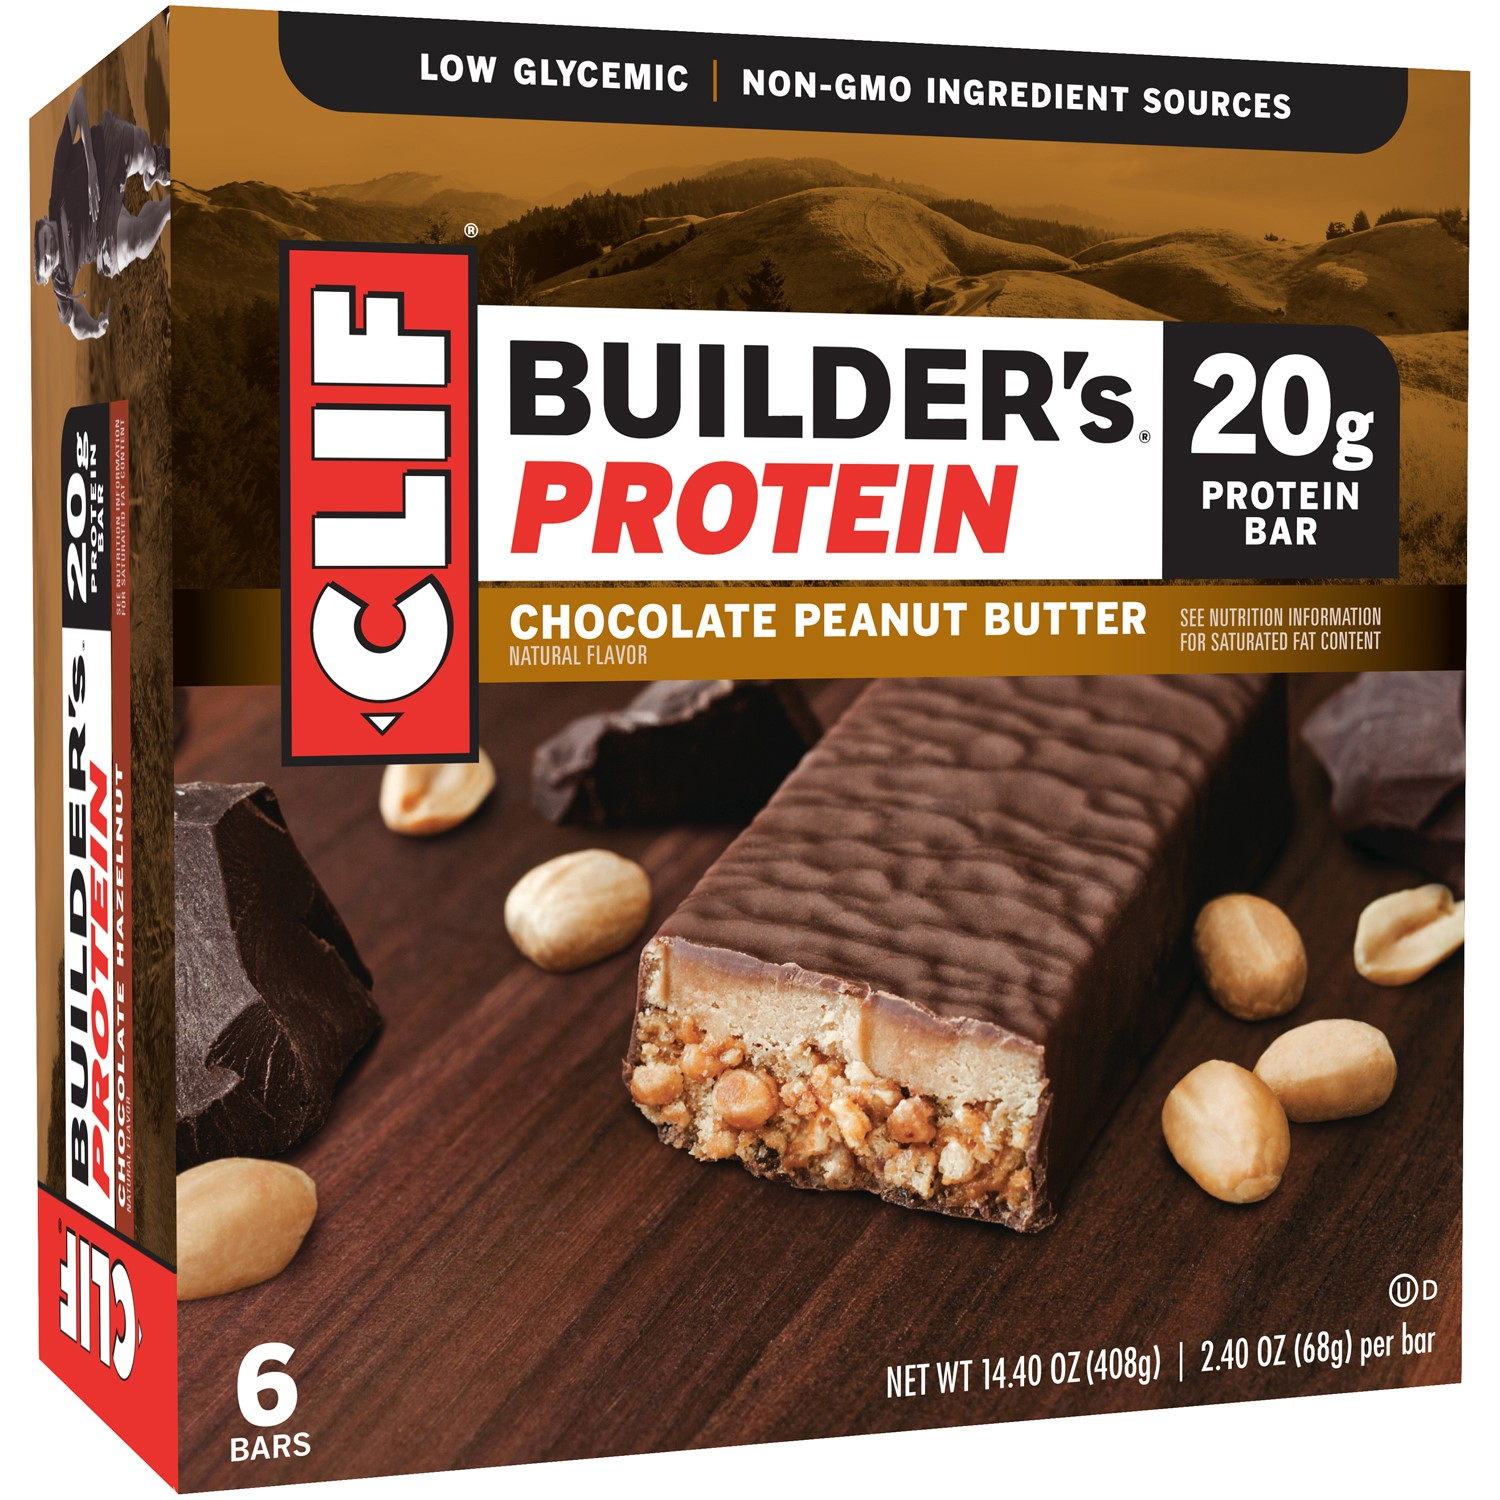 Clif Builder's Protein Bar, Chocolate Peanut Butter, 20g Protein, 6 Ct